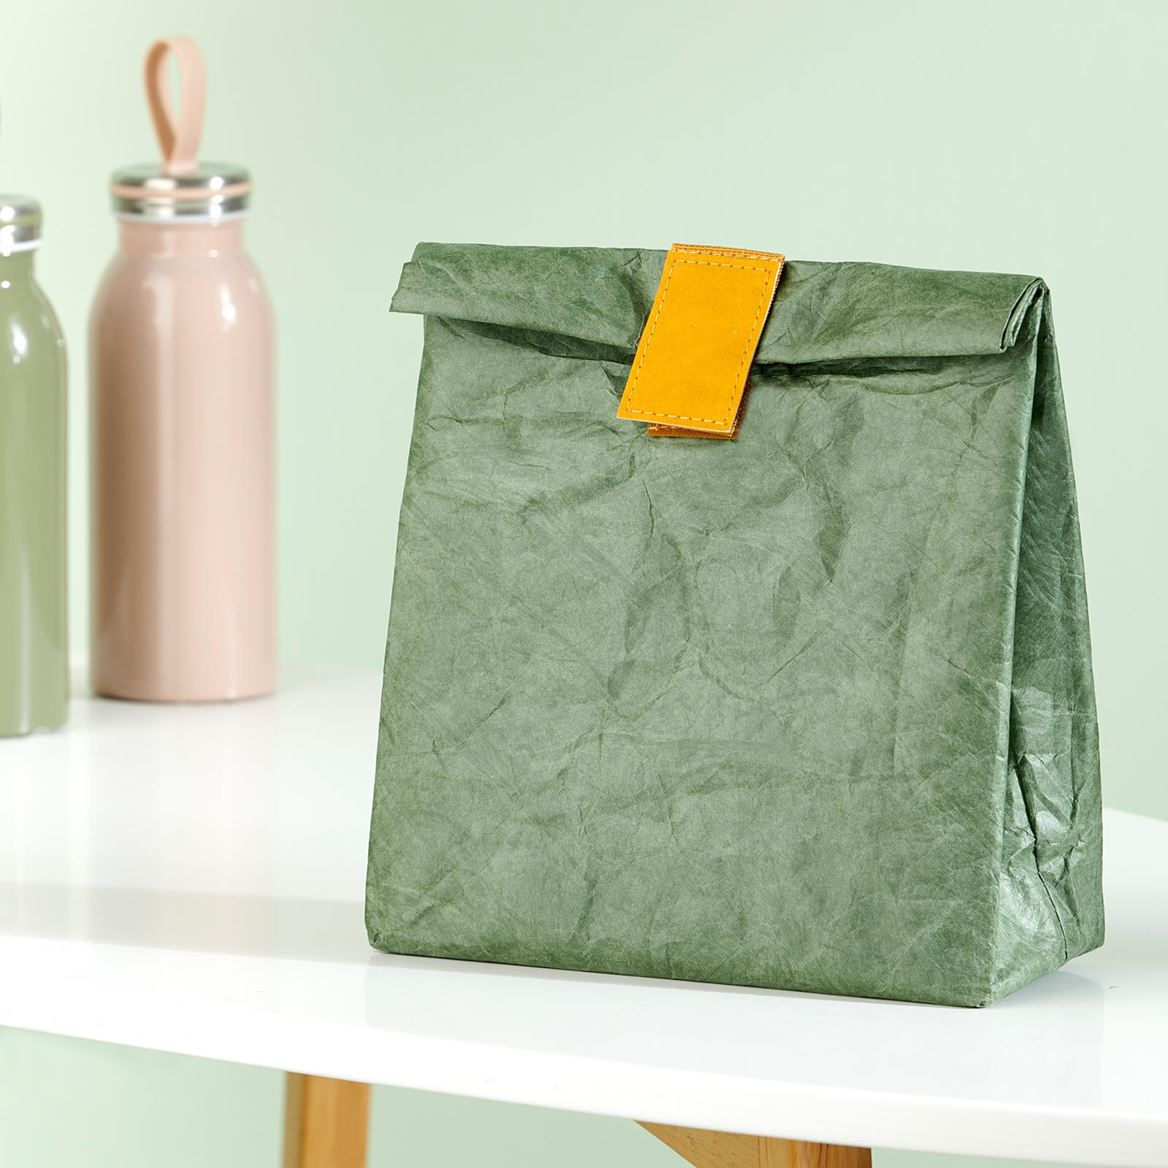 WE CARE Sac à lunch vert H 29 x Larg. 20 x P 10 cm_we-care-sac-à-lunch-vert-h-29-x-larg--20-x-p-10-cm